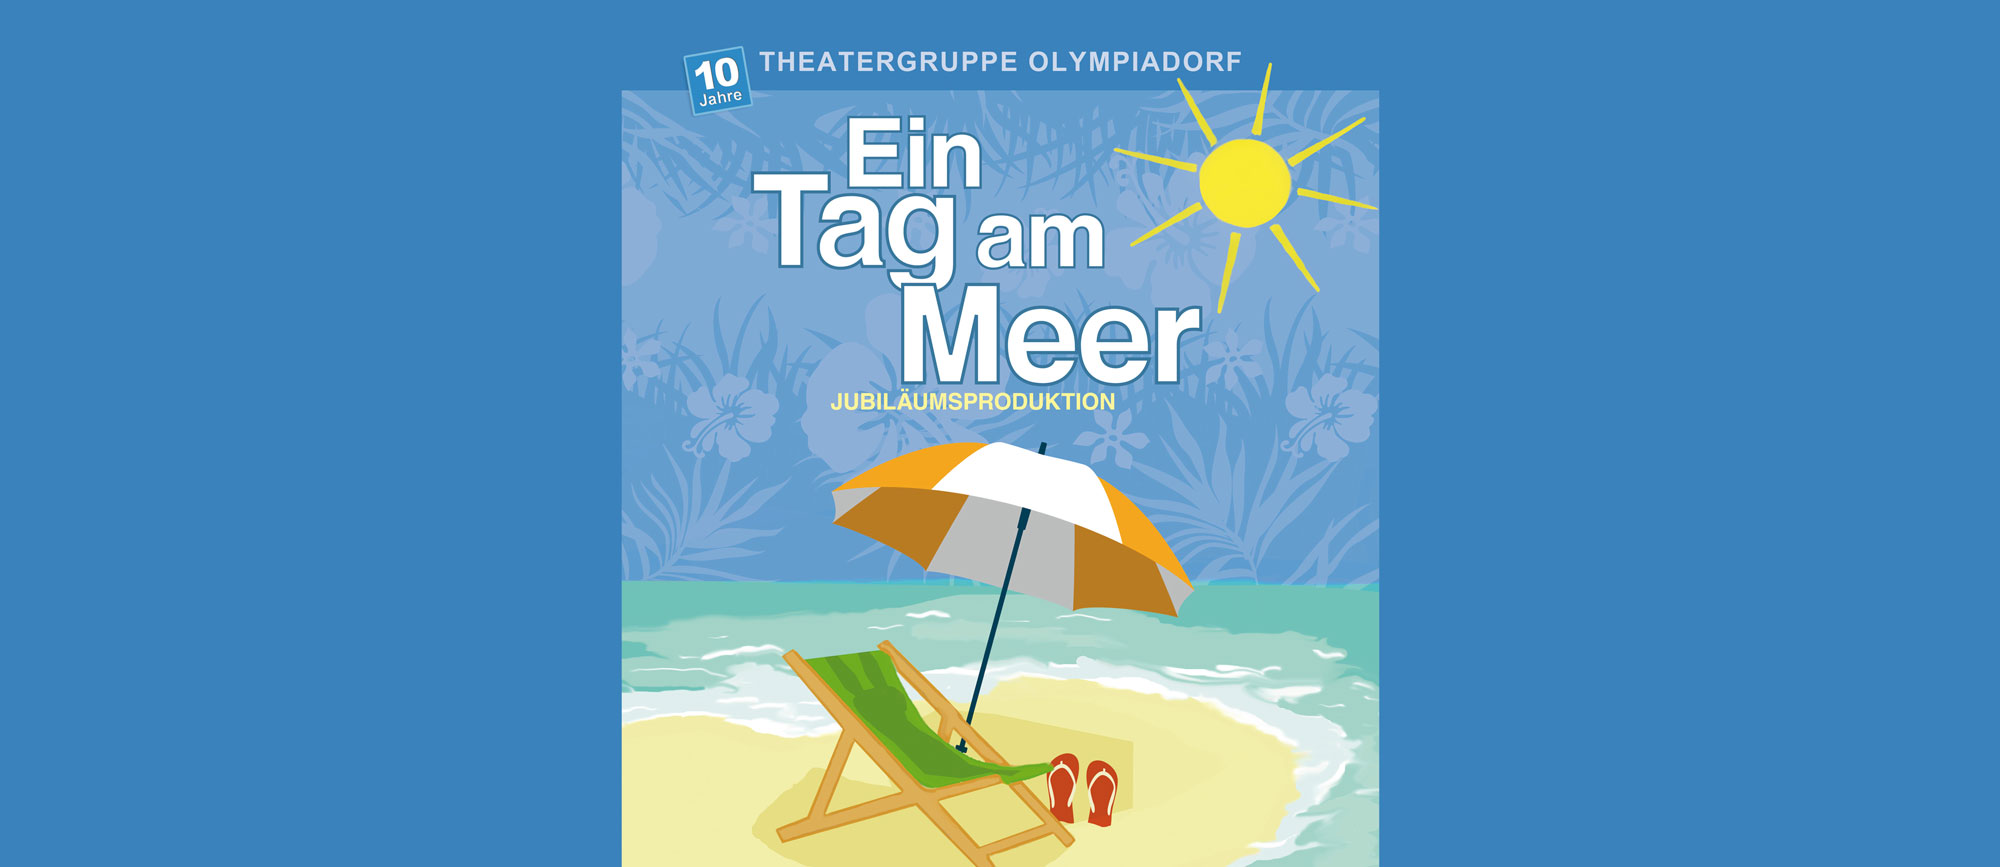 Ein-Tag-am-Meer-Theatergruppe-Olympiadorf-muenchen-titel-02